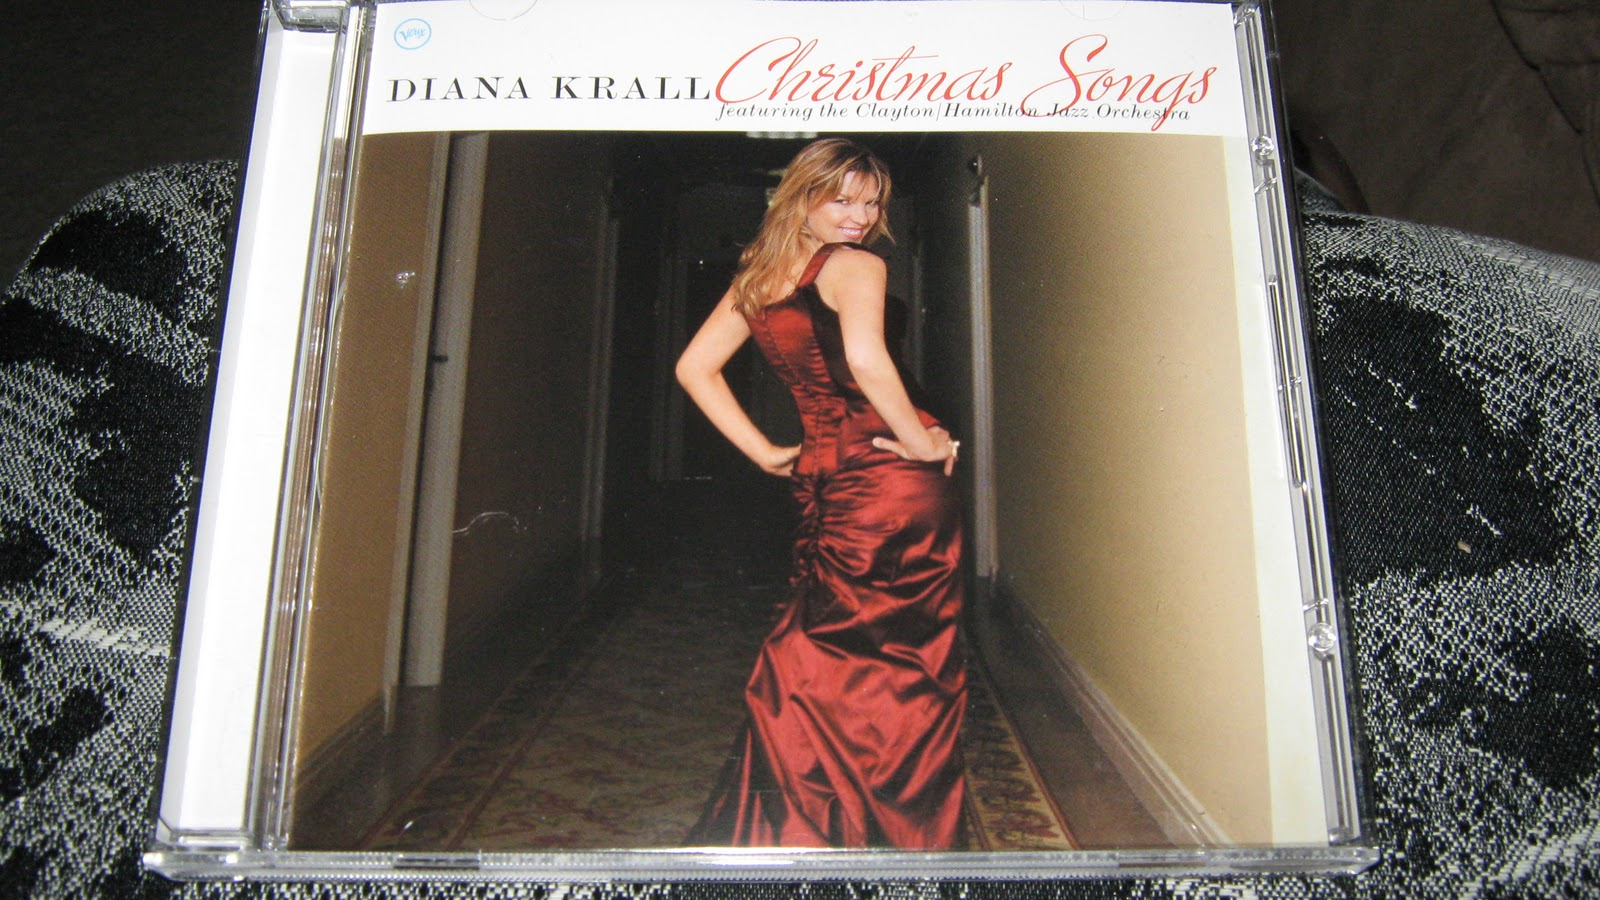 christmas songs by diana krall featuring the claytonhamilton jazz orchestra - Diana Krall Christmas Songs